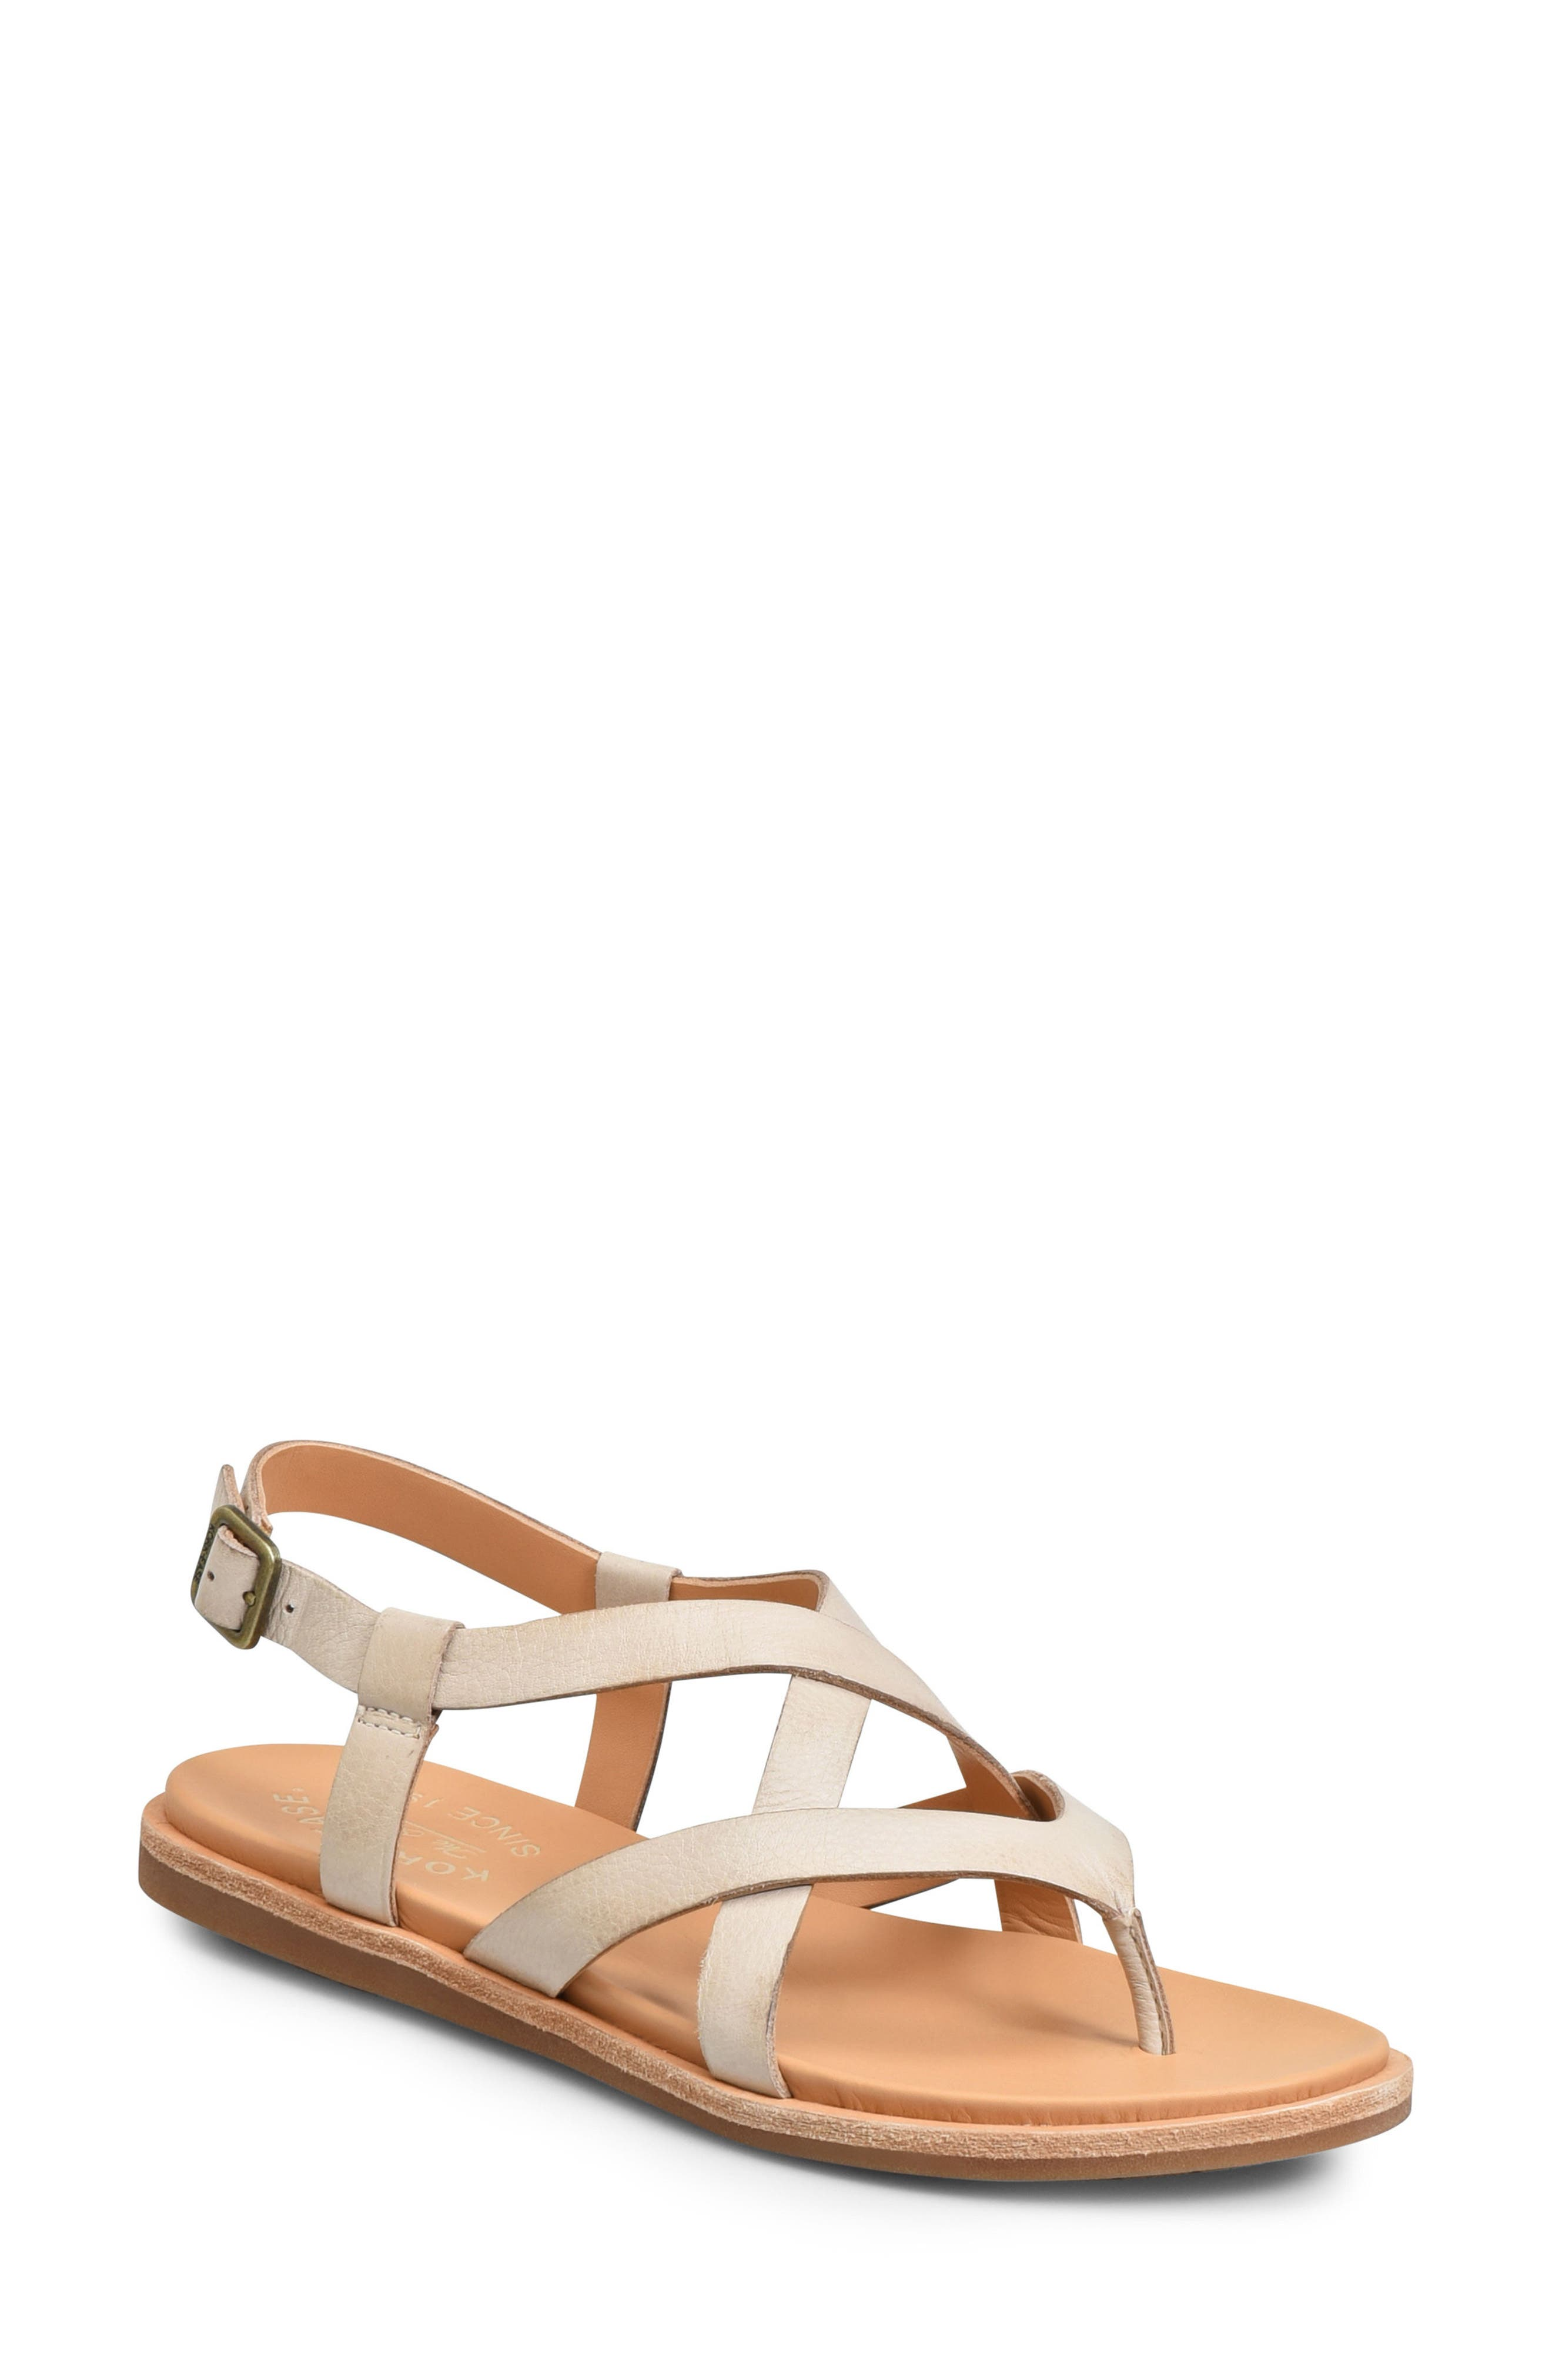 KORK-EASE<SUP>®</SUP> Yarbrough Sandal, Main, color, LIGHT GREY LEATHER